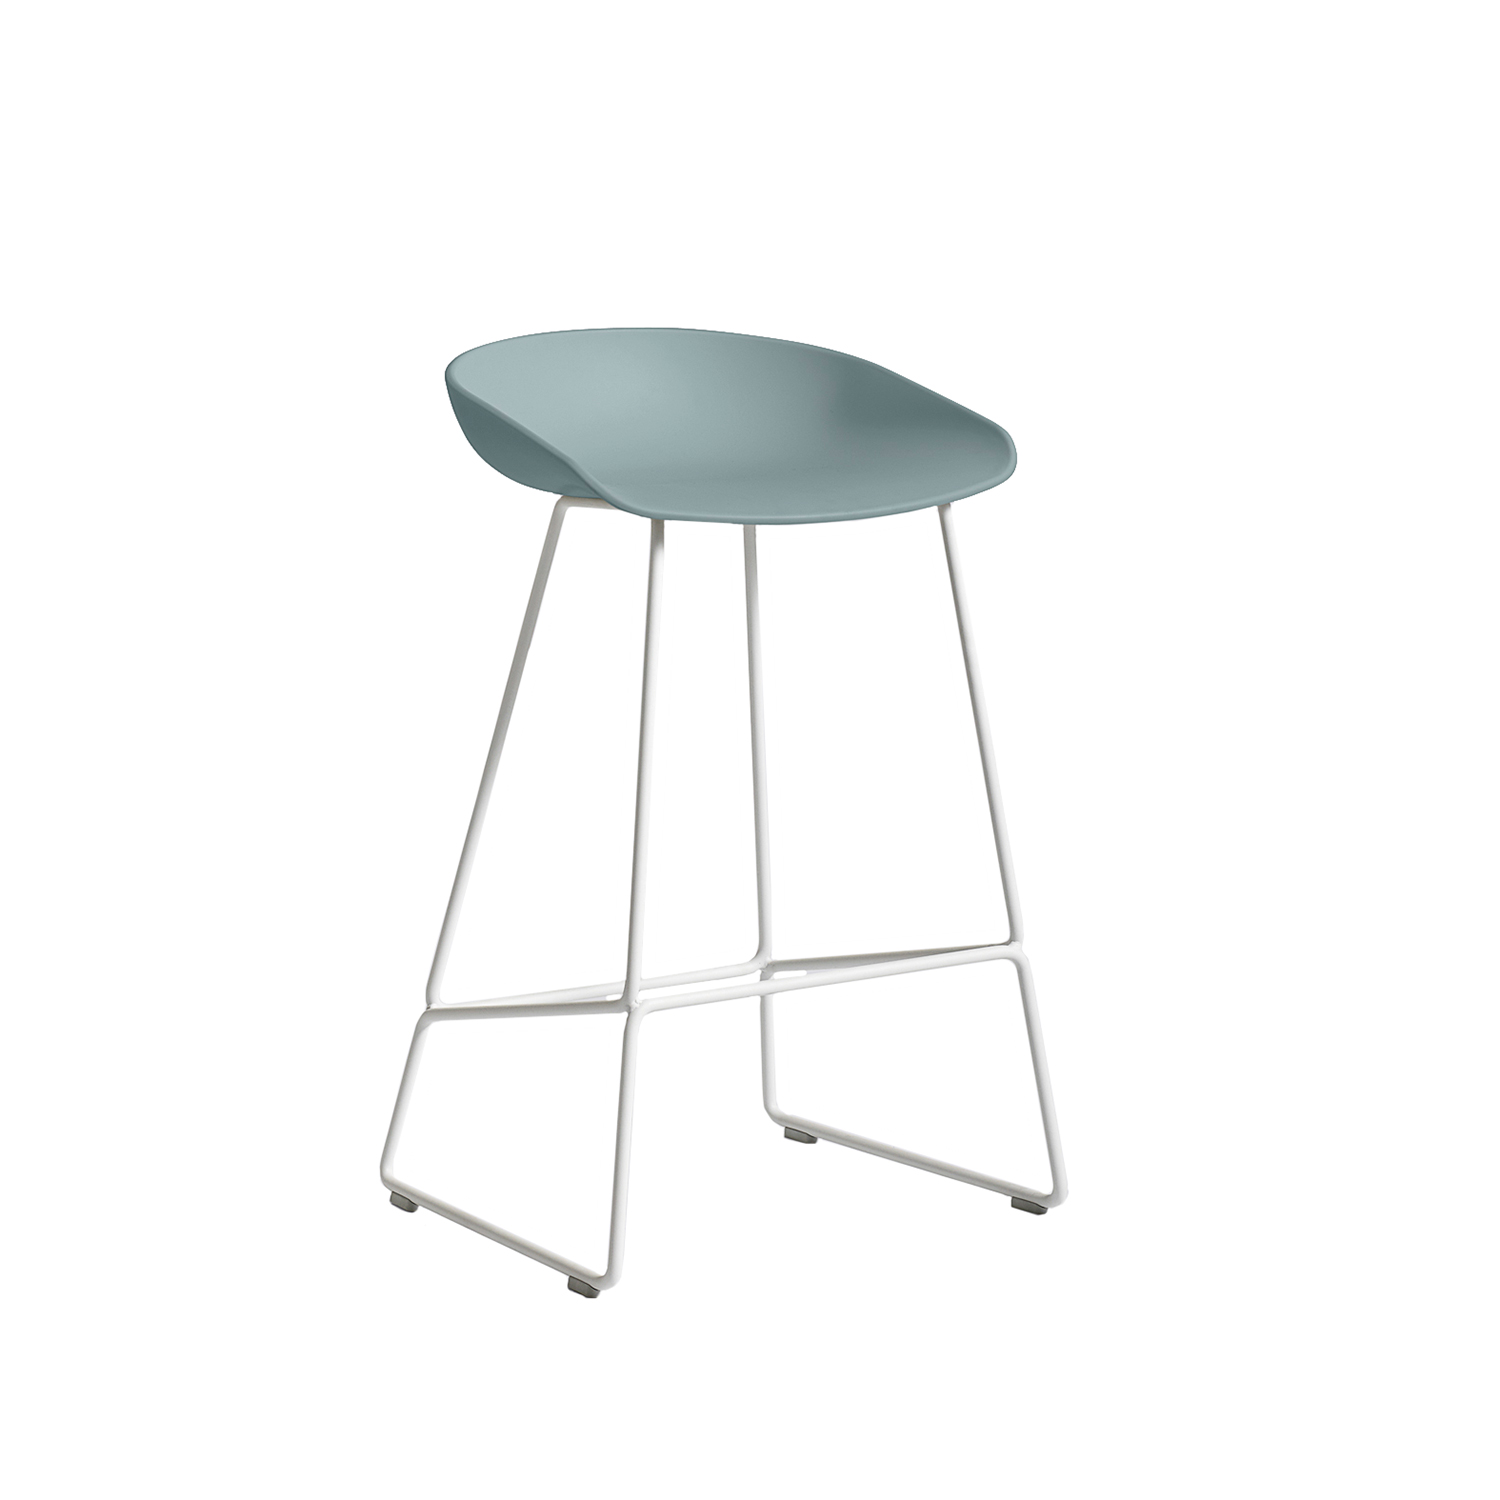 About a Stool 38 barstol h65, dusty blue/vit